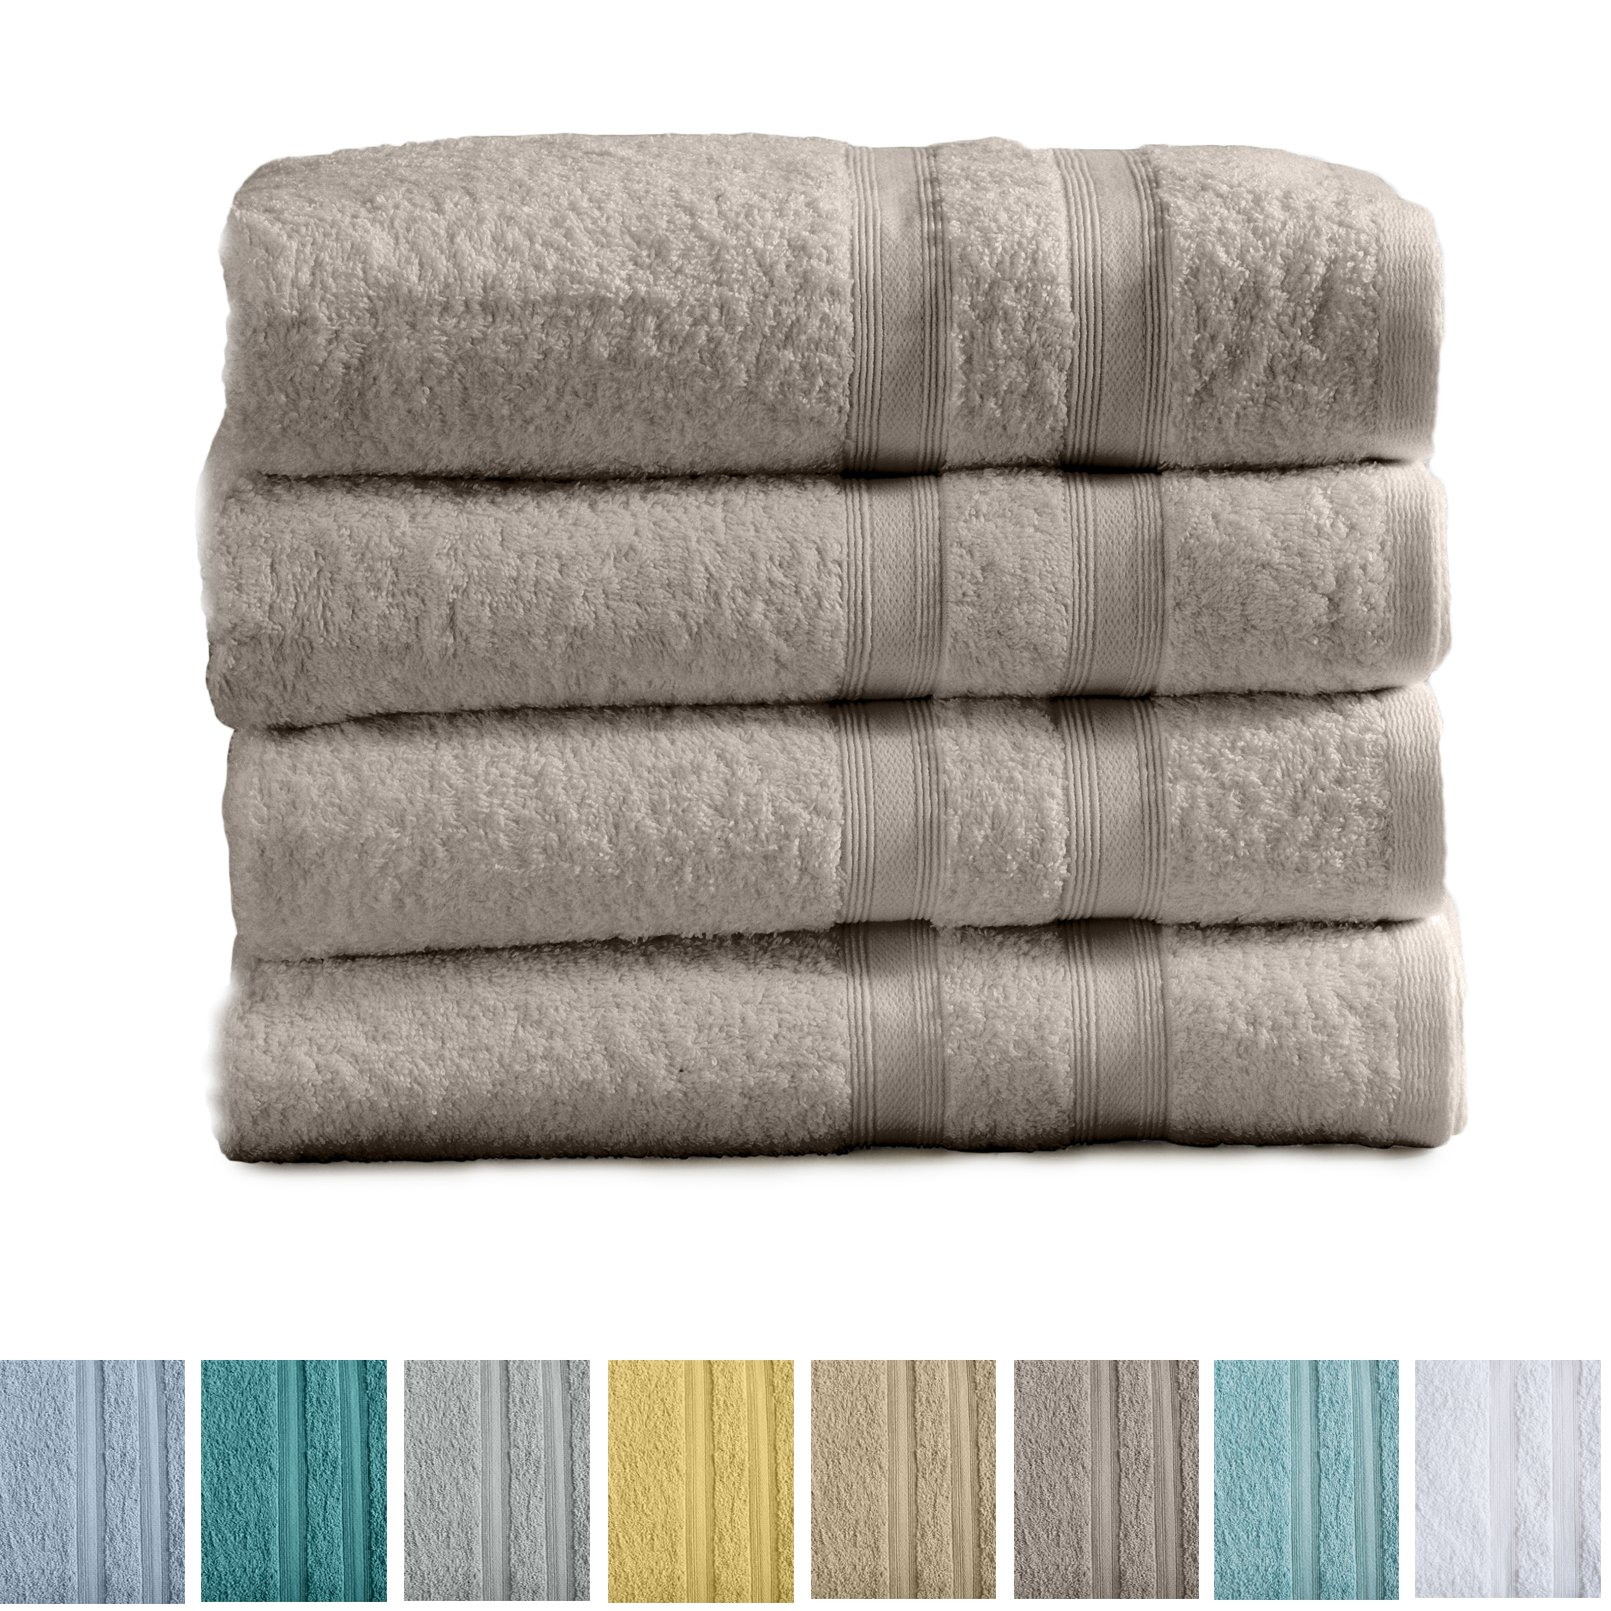 4-Pack Premium 100% Cotton Bath Towel Set (28 x 52 inch) Multipack For Home Spa Pool Gym Use. Quick-Drying and Extra Absorbent. Emelia Collection. (Silver Cloud)